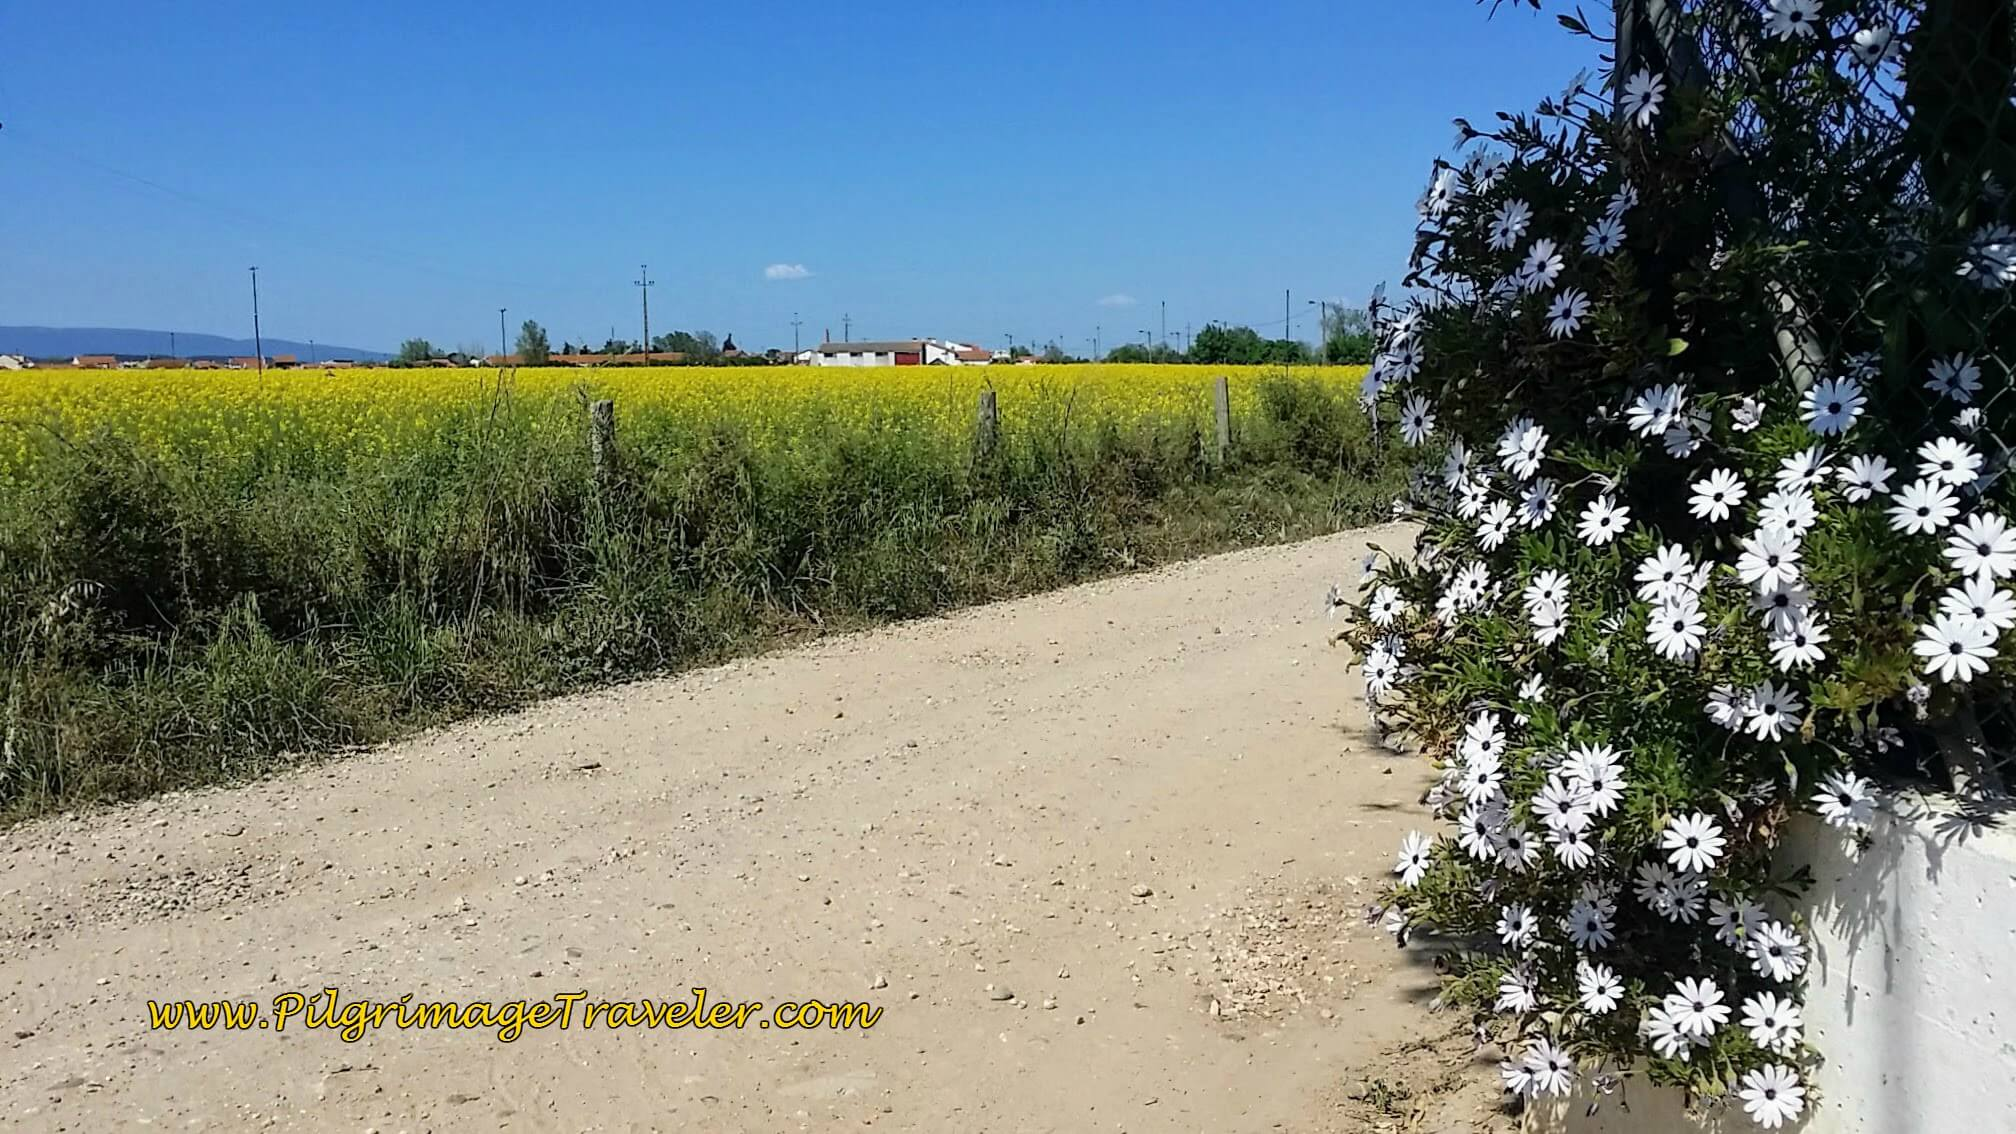 Hot, flat, endless stretches of farmland, walking out of Lisbon on the Camino Portugués